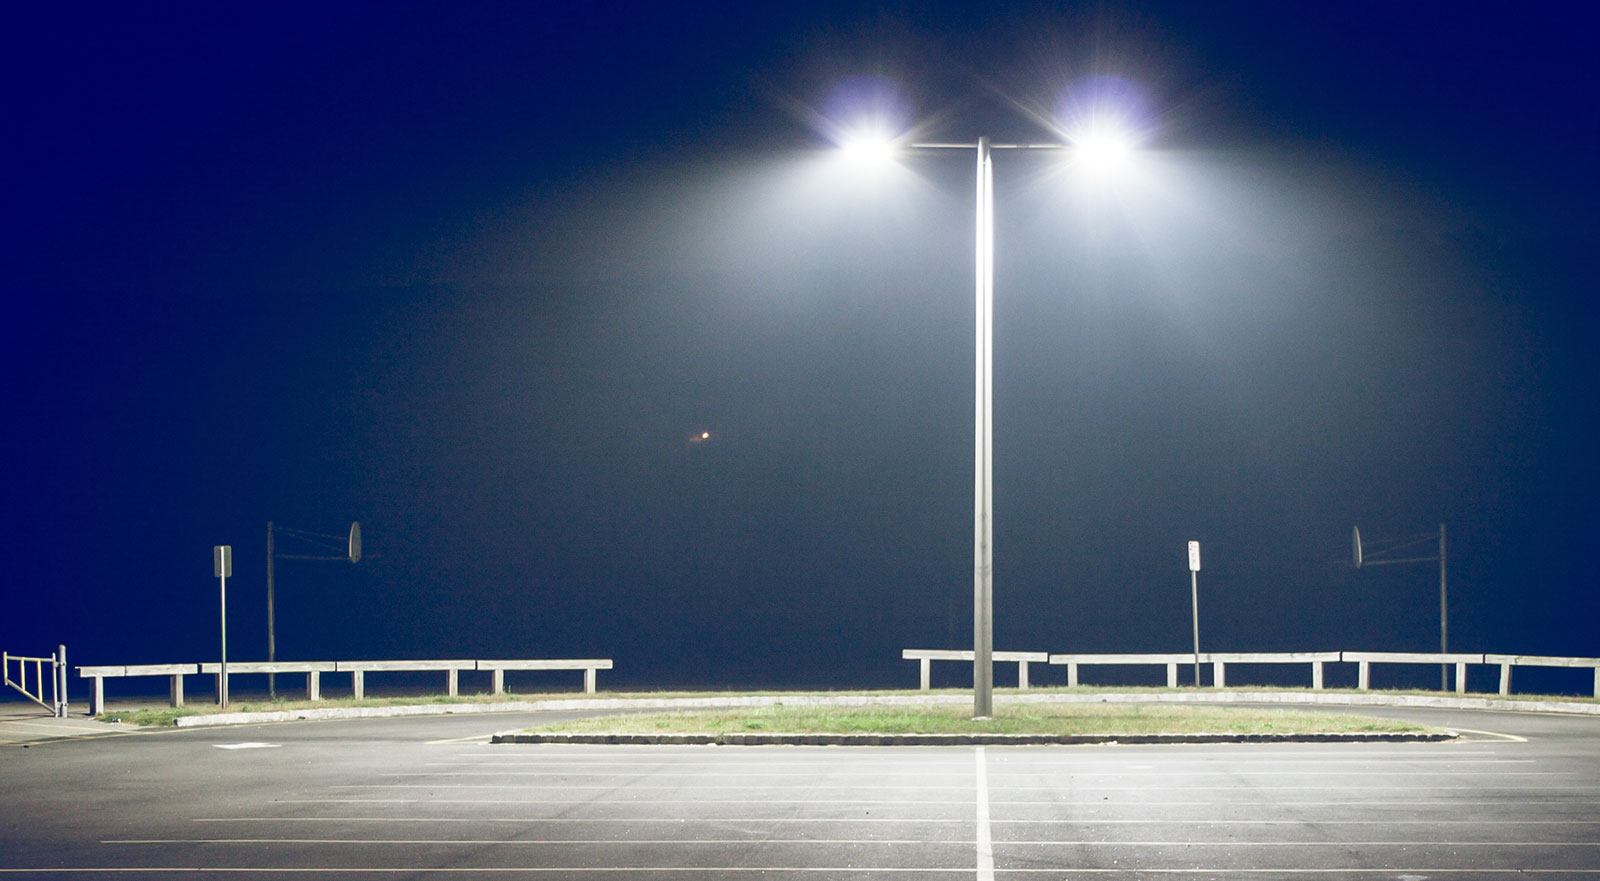 Parking lots and garage led lighting retrofits in michigan parking lots and garages need energy efficient commercial led lighting retrofits to keep costs down these large areas also require updated lighting aloadofball